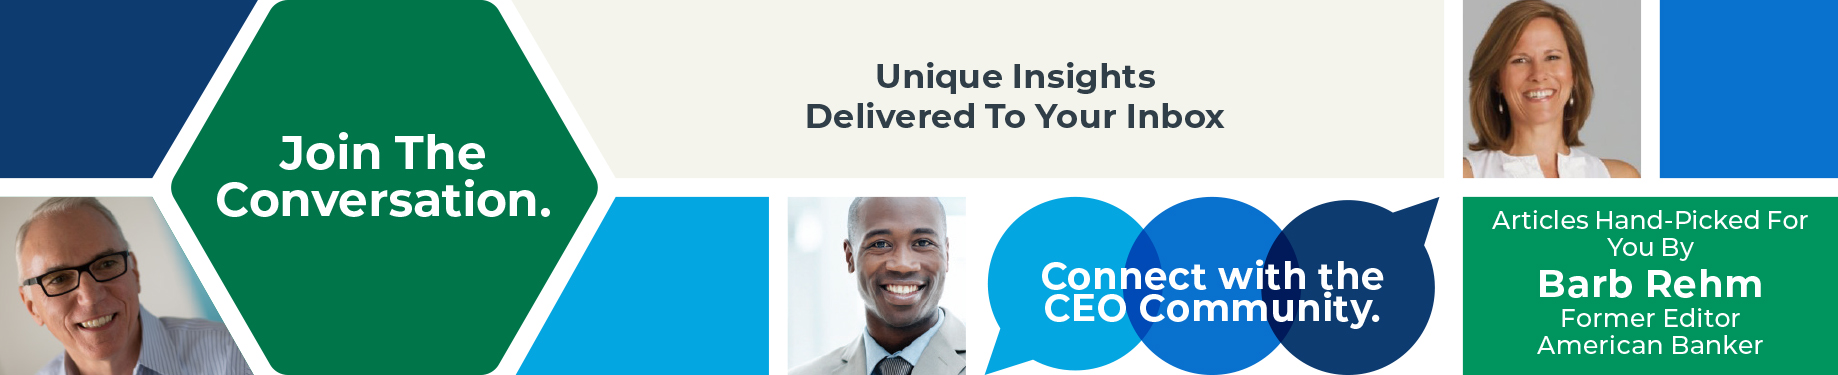 Unique Insights Delivered to Your Inbox